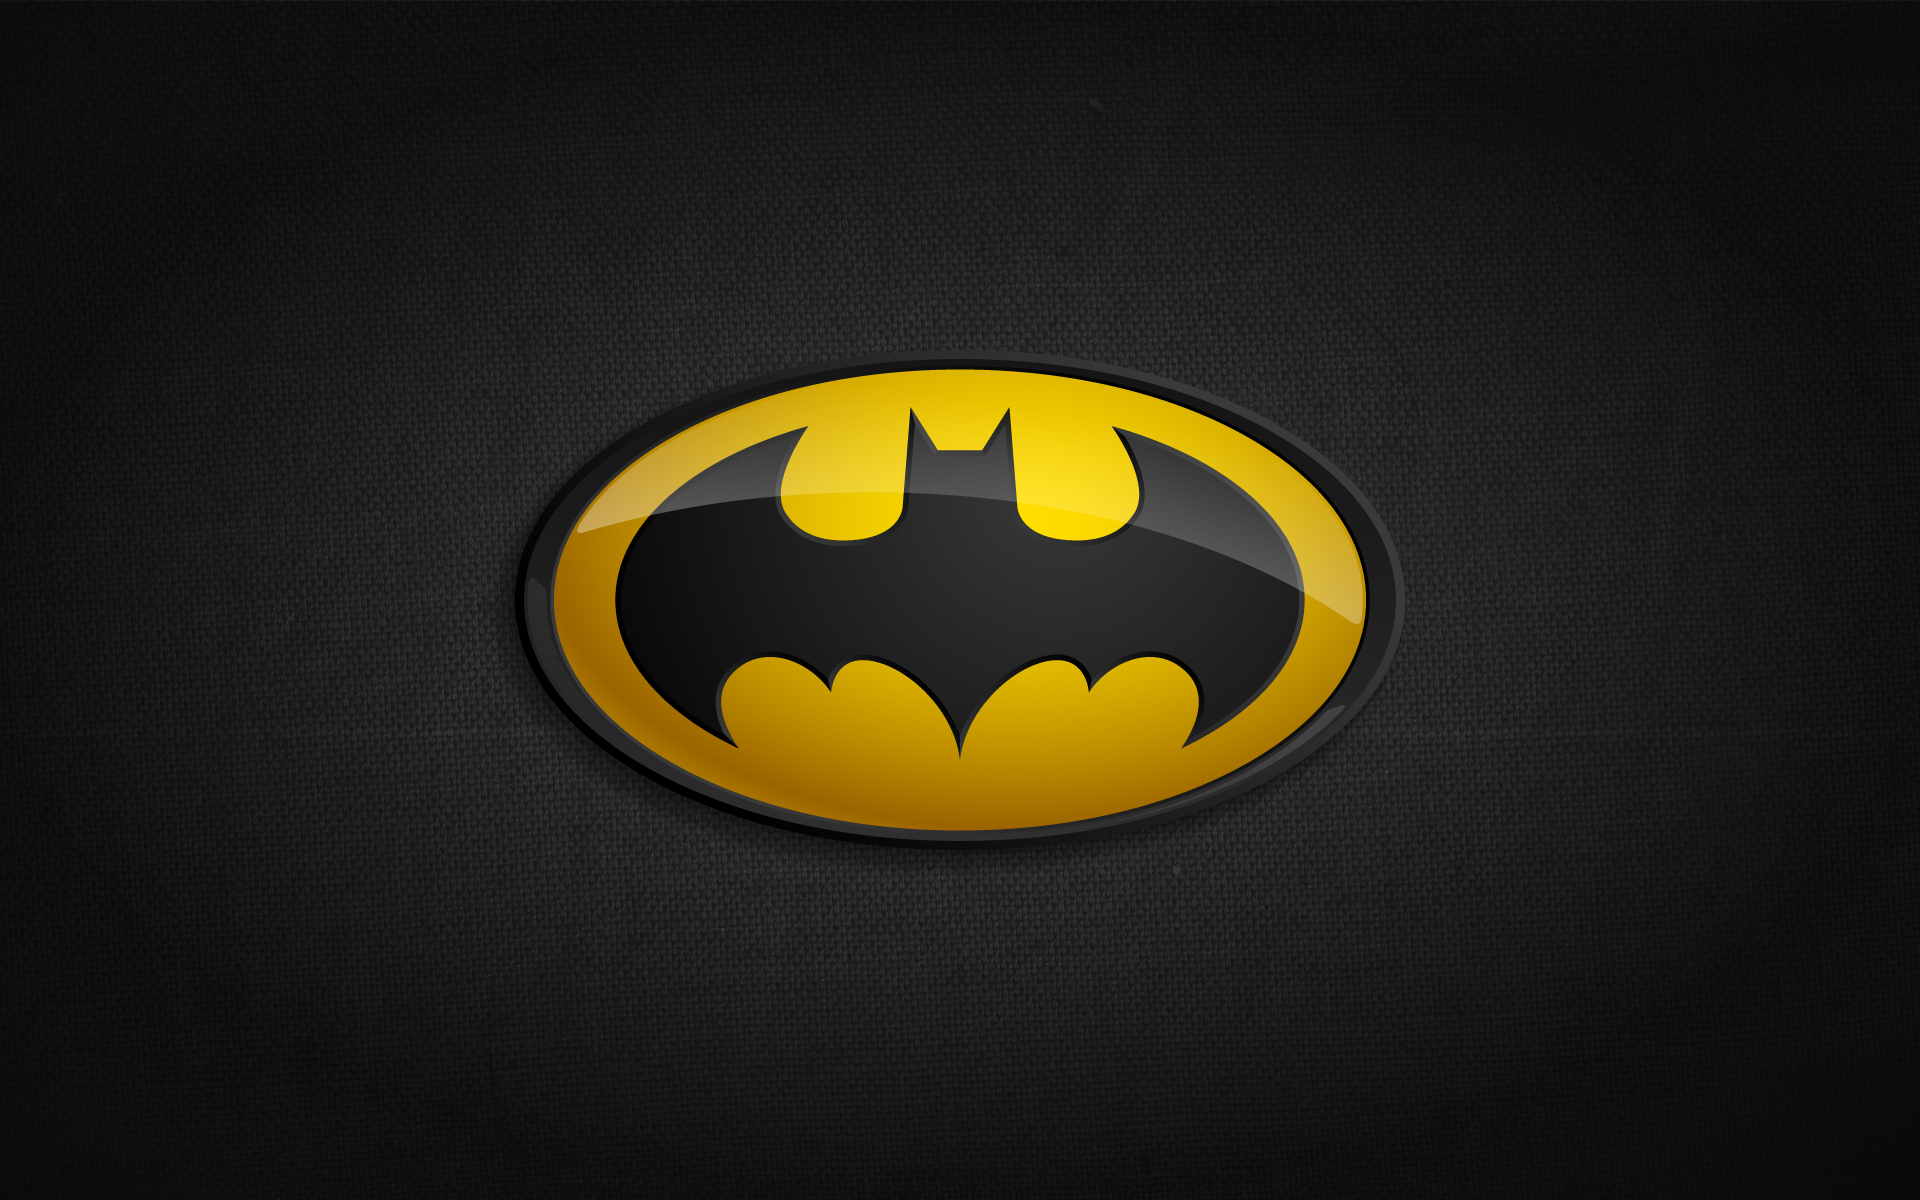 Batman Logo 3D 1920x1200